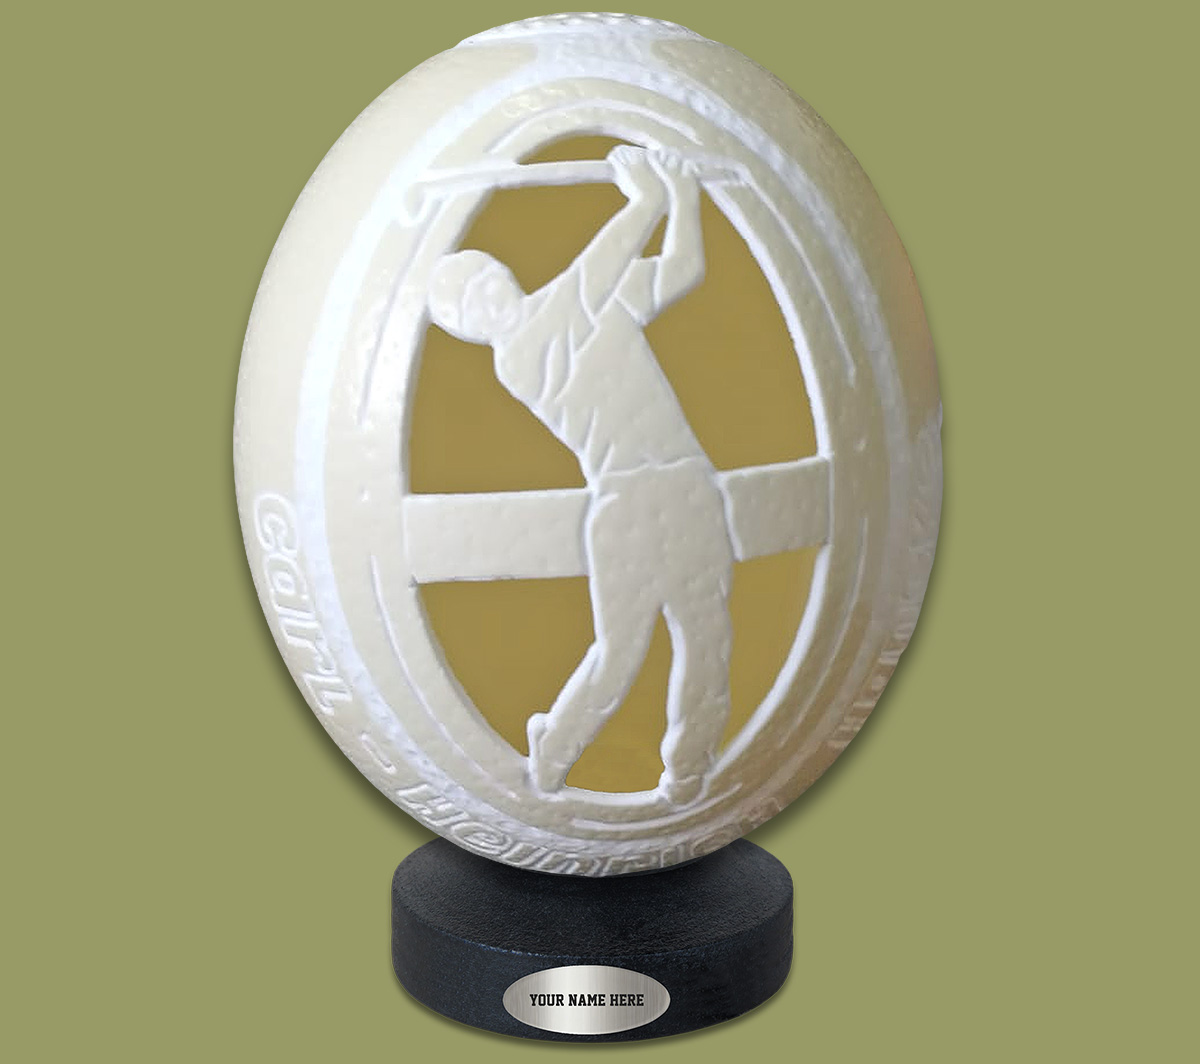 Ostrich Egg Carved Golfer